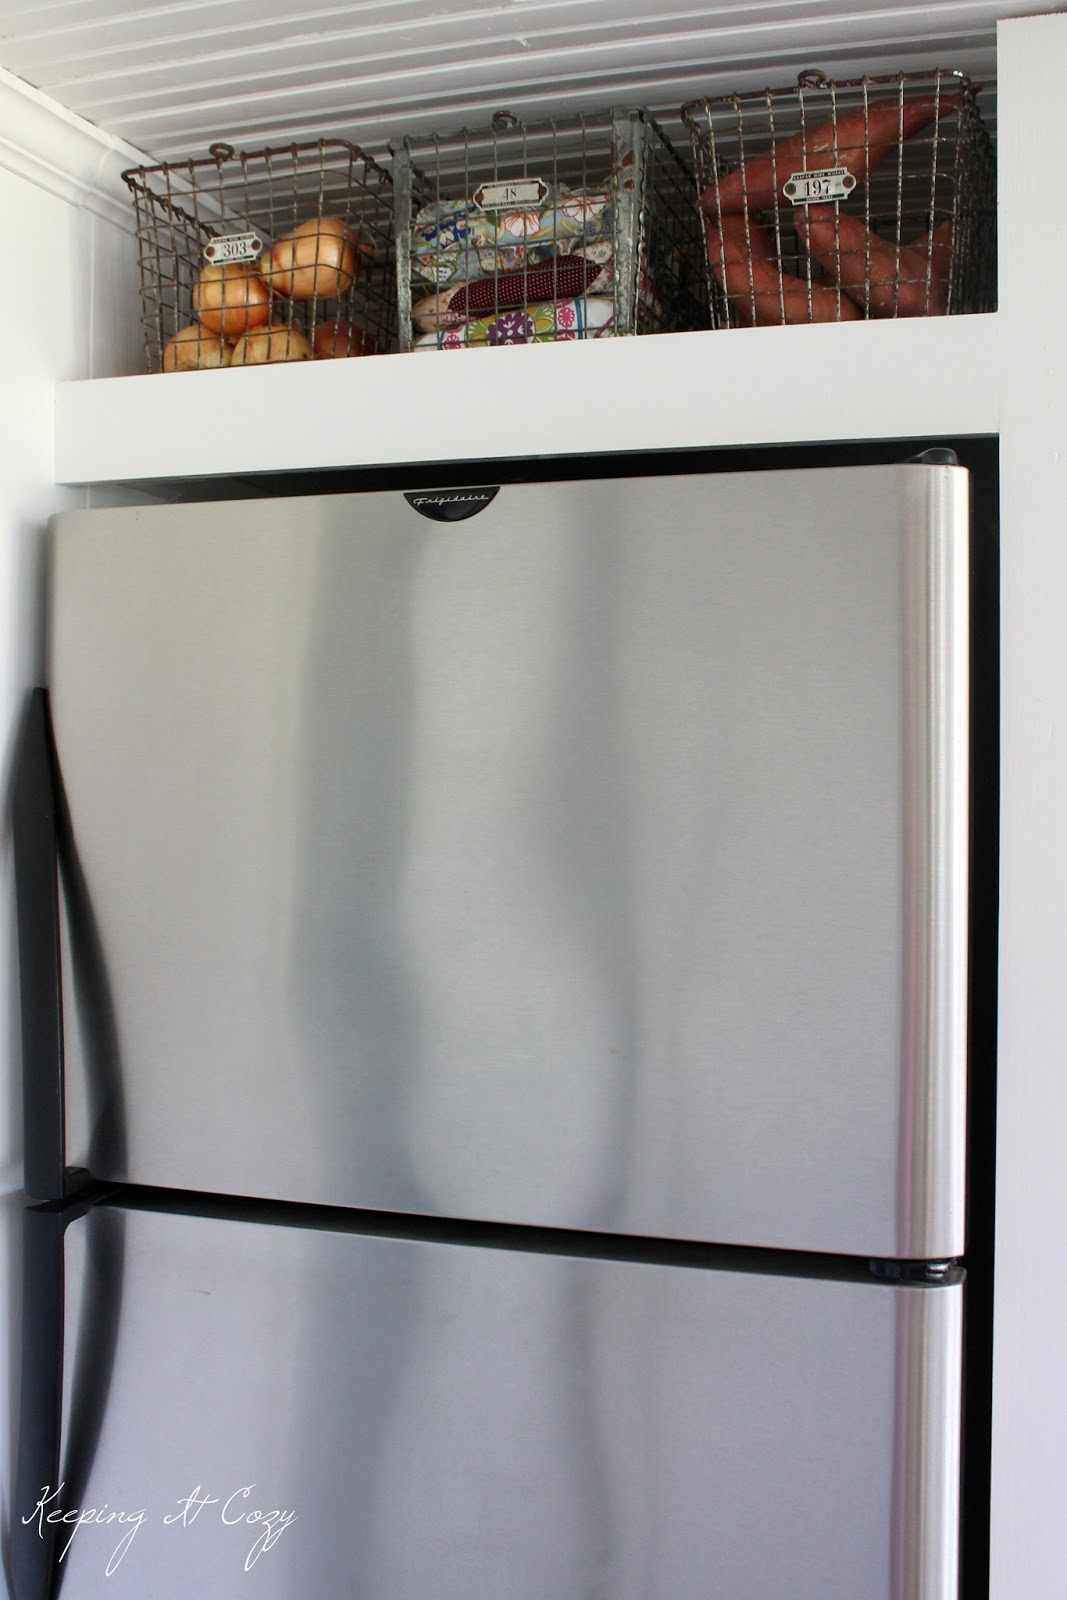 how to put shelves back in refrigerator